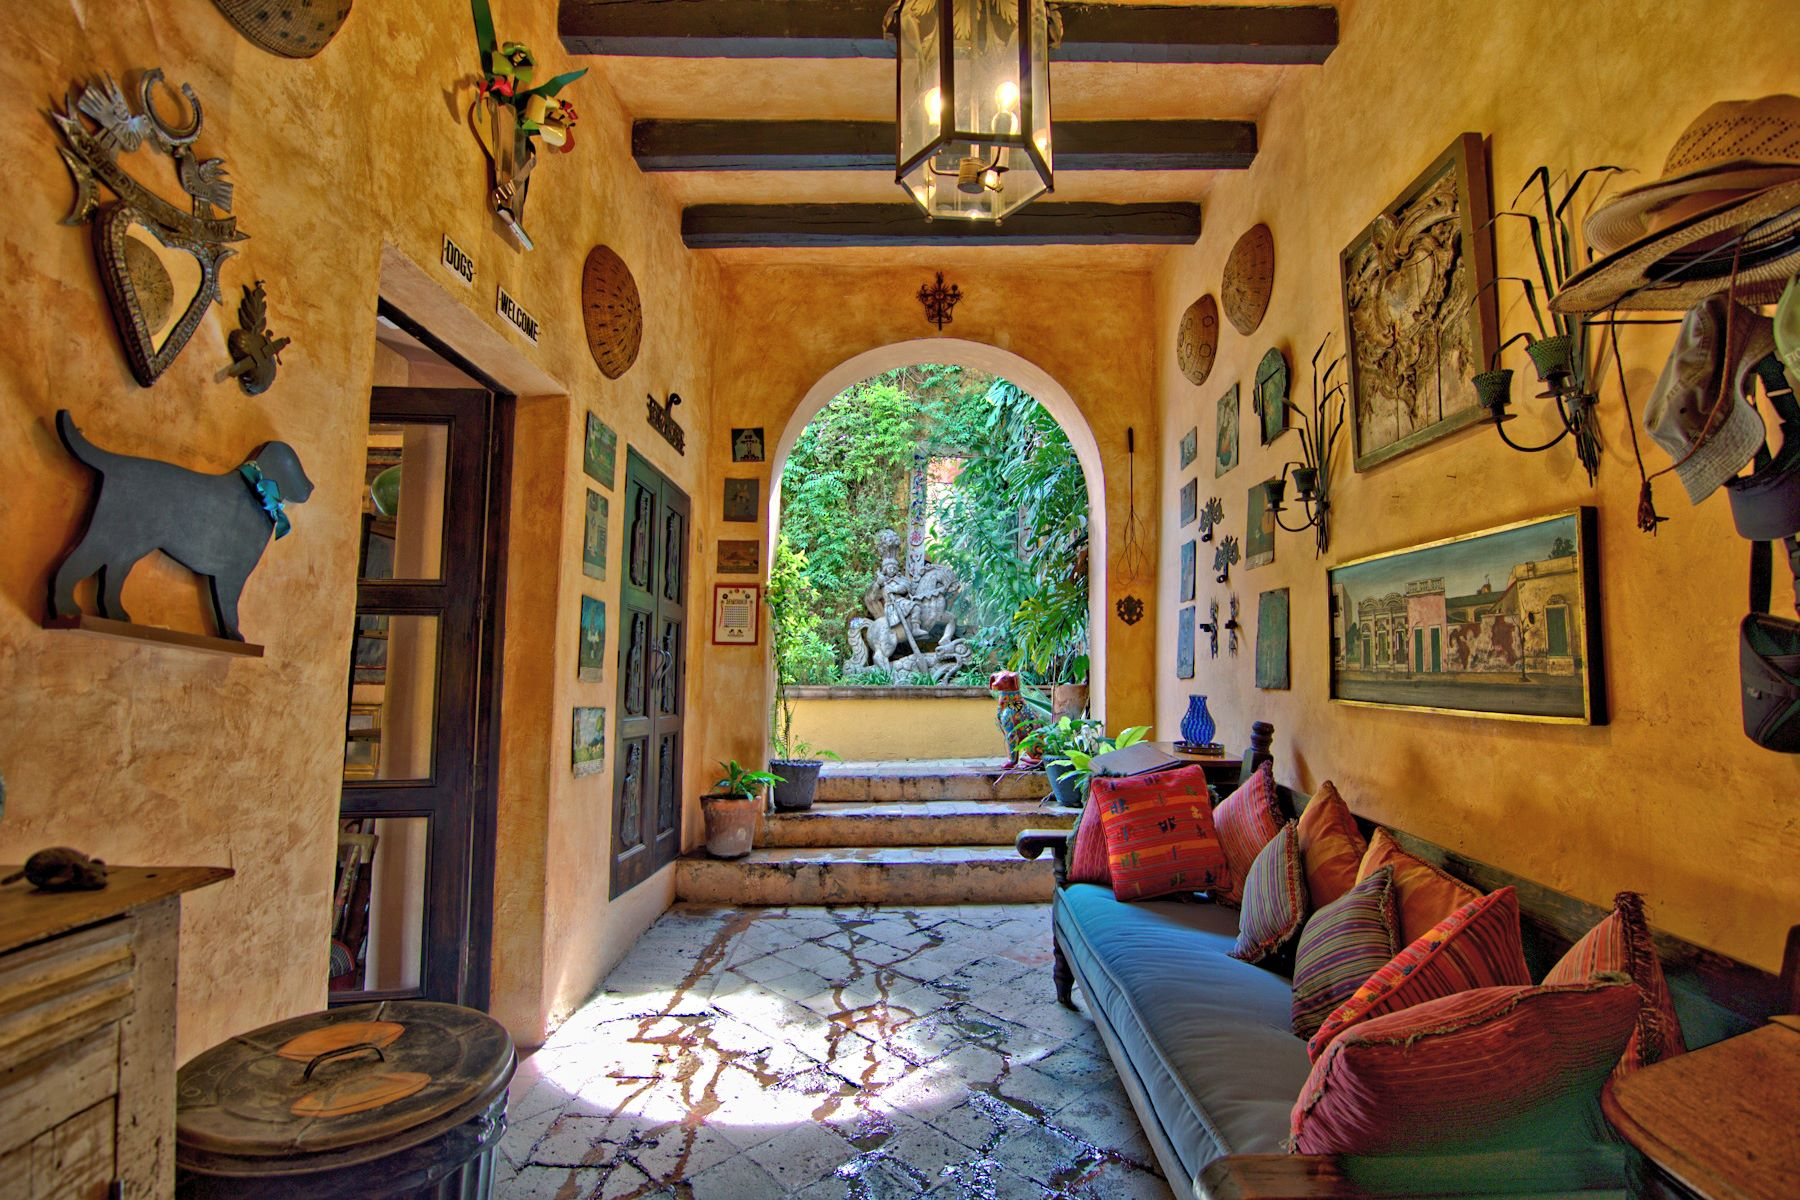 Single Family Home for Sale at Casa Colonial Salida a Queretaro 40 San Miguel De Allende, Guanajuato 37700 Mexico